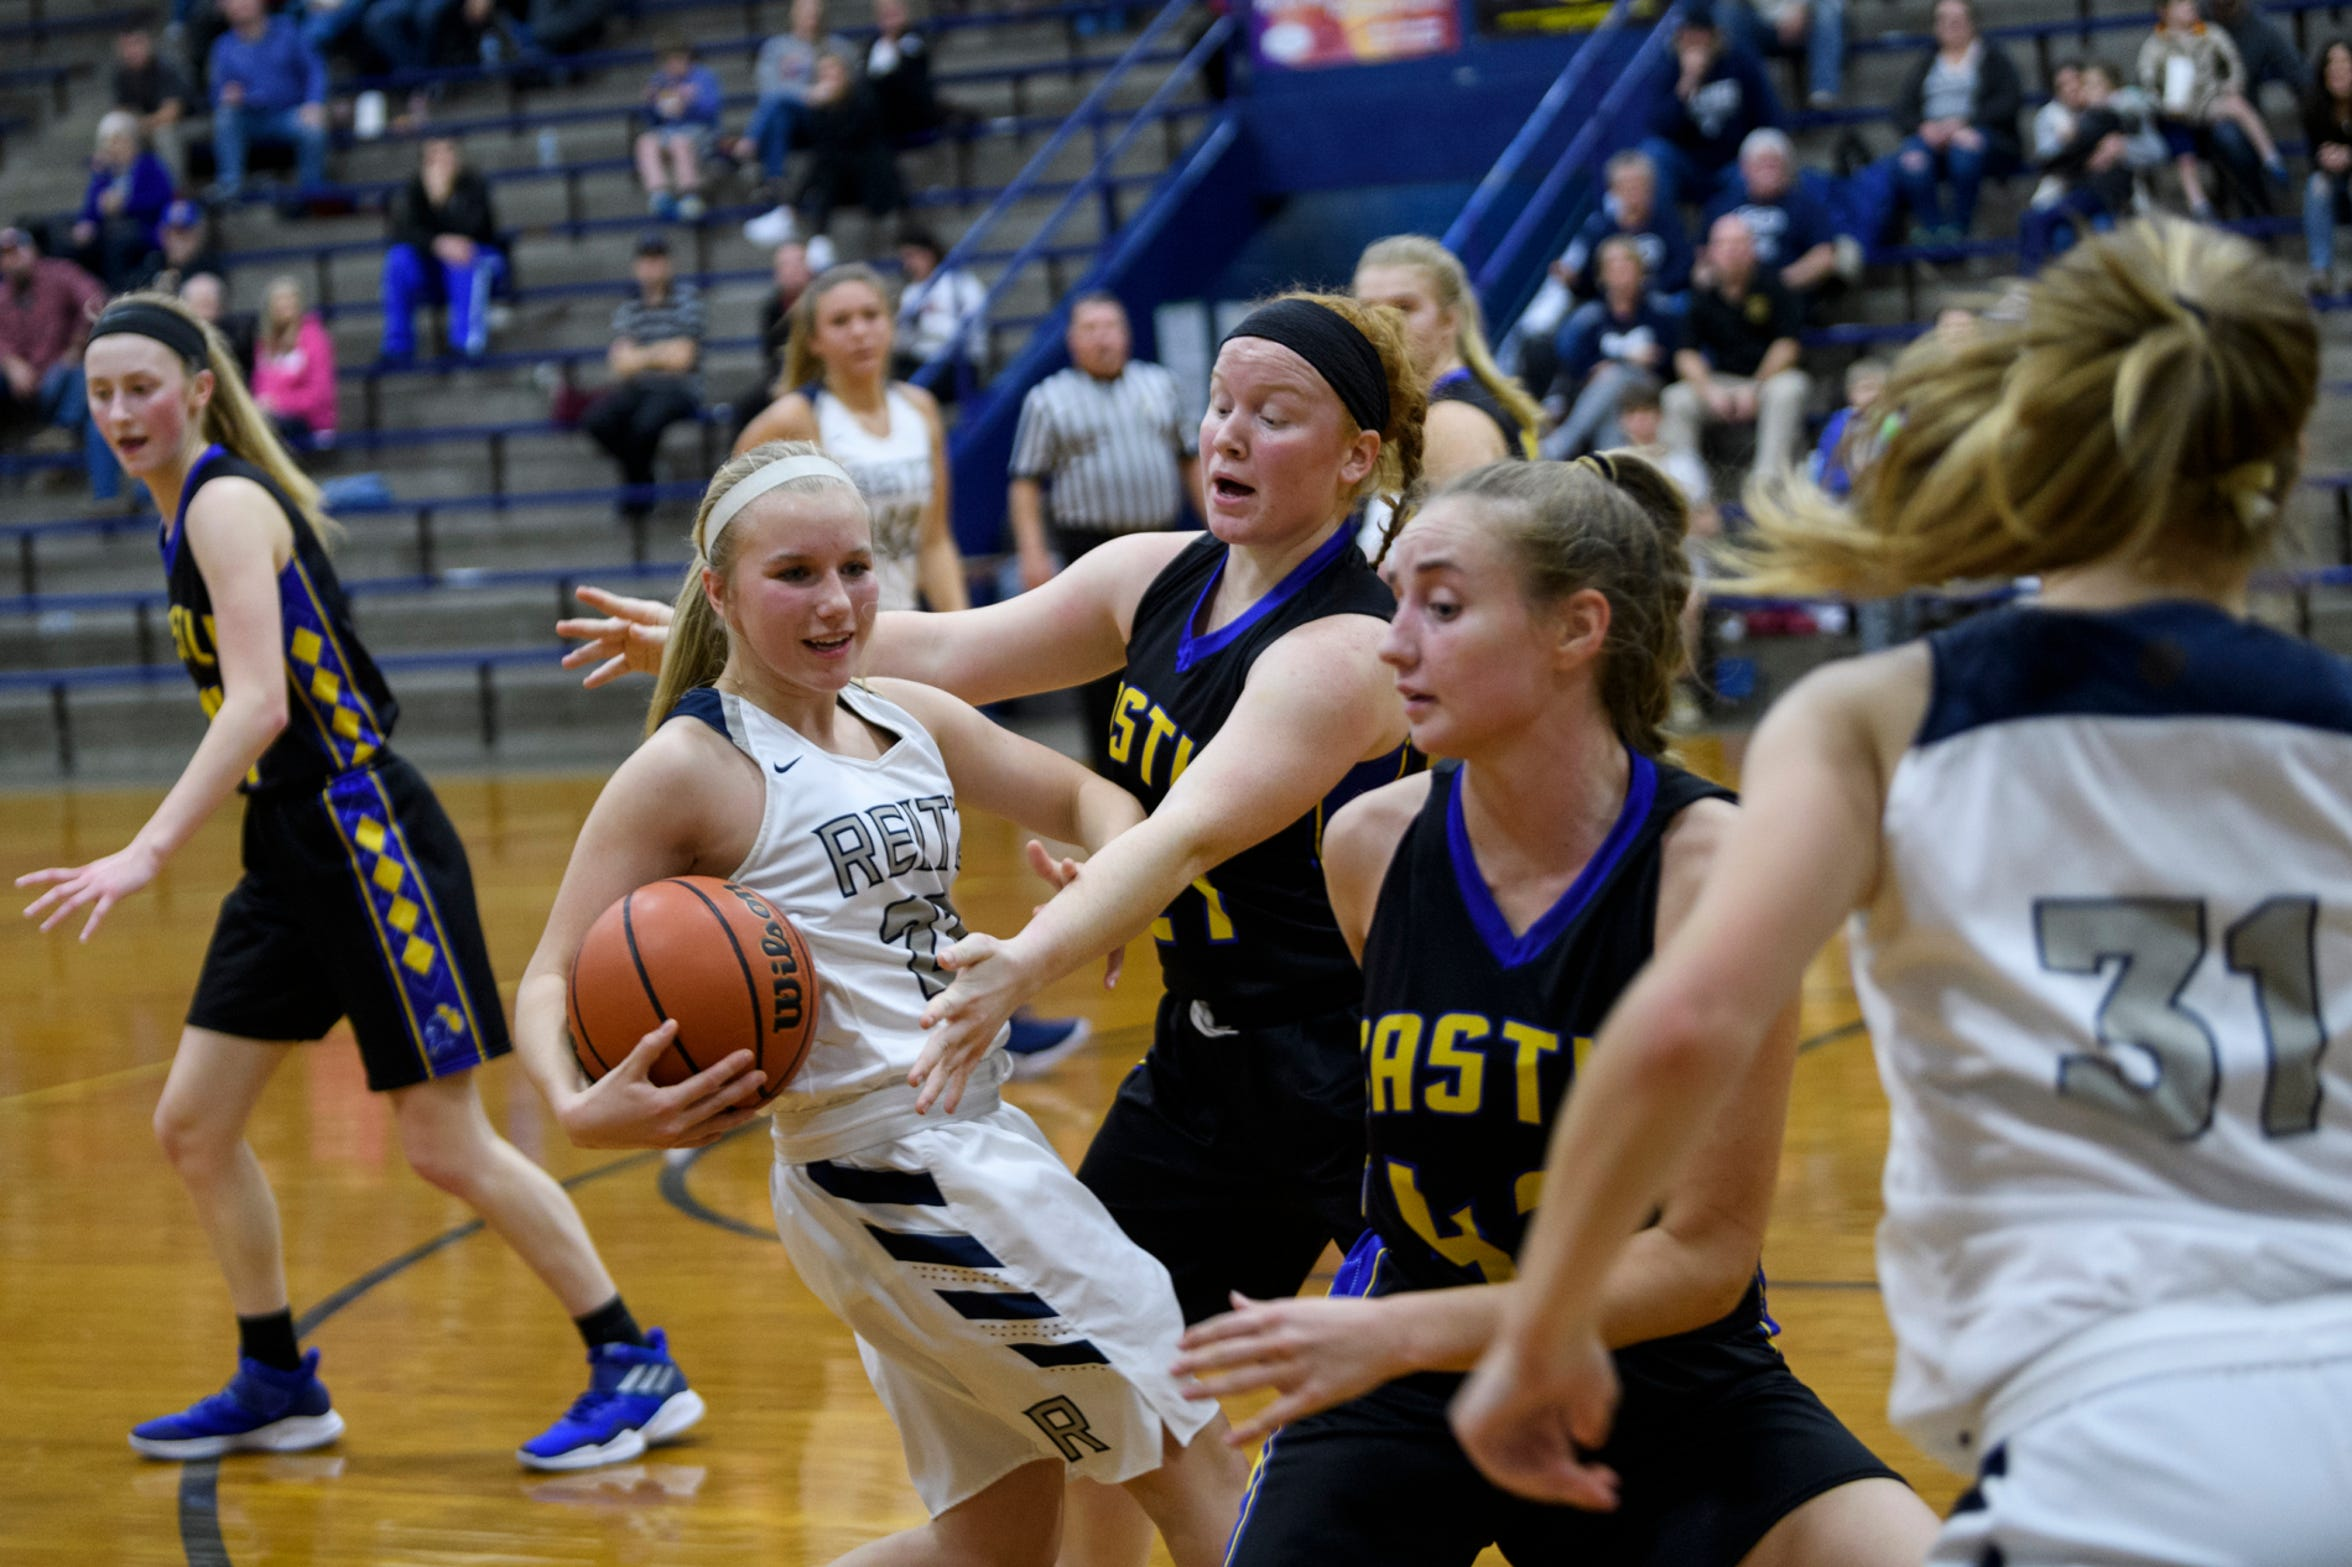 Reitz's Alyssa Haynes (22) keeps the ball away from Castle defender Kial Mitchell (21) during the game at F.J. Reitz High School in Evansville, Ind., Thursday, Jan. 3, 2019. The Knights defeated the Panthers, 51-17.